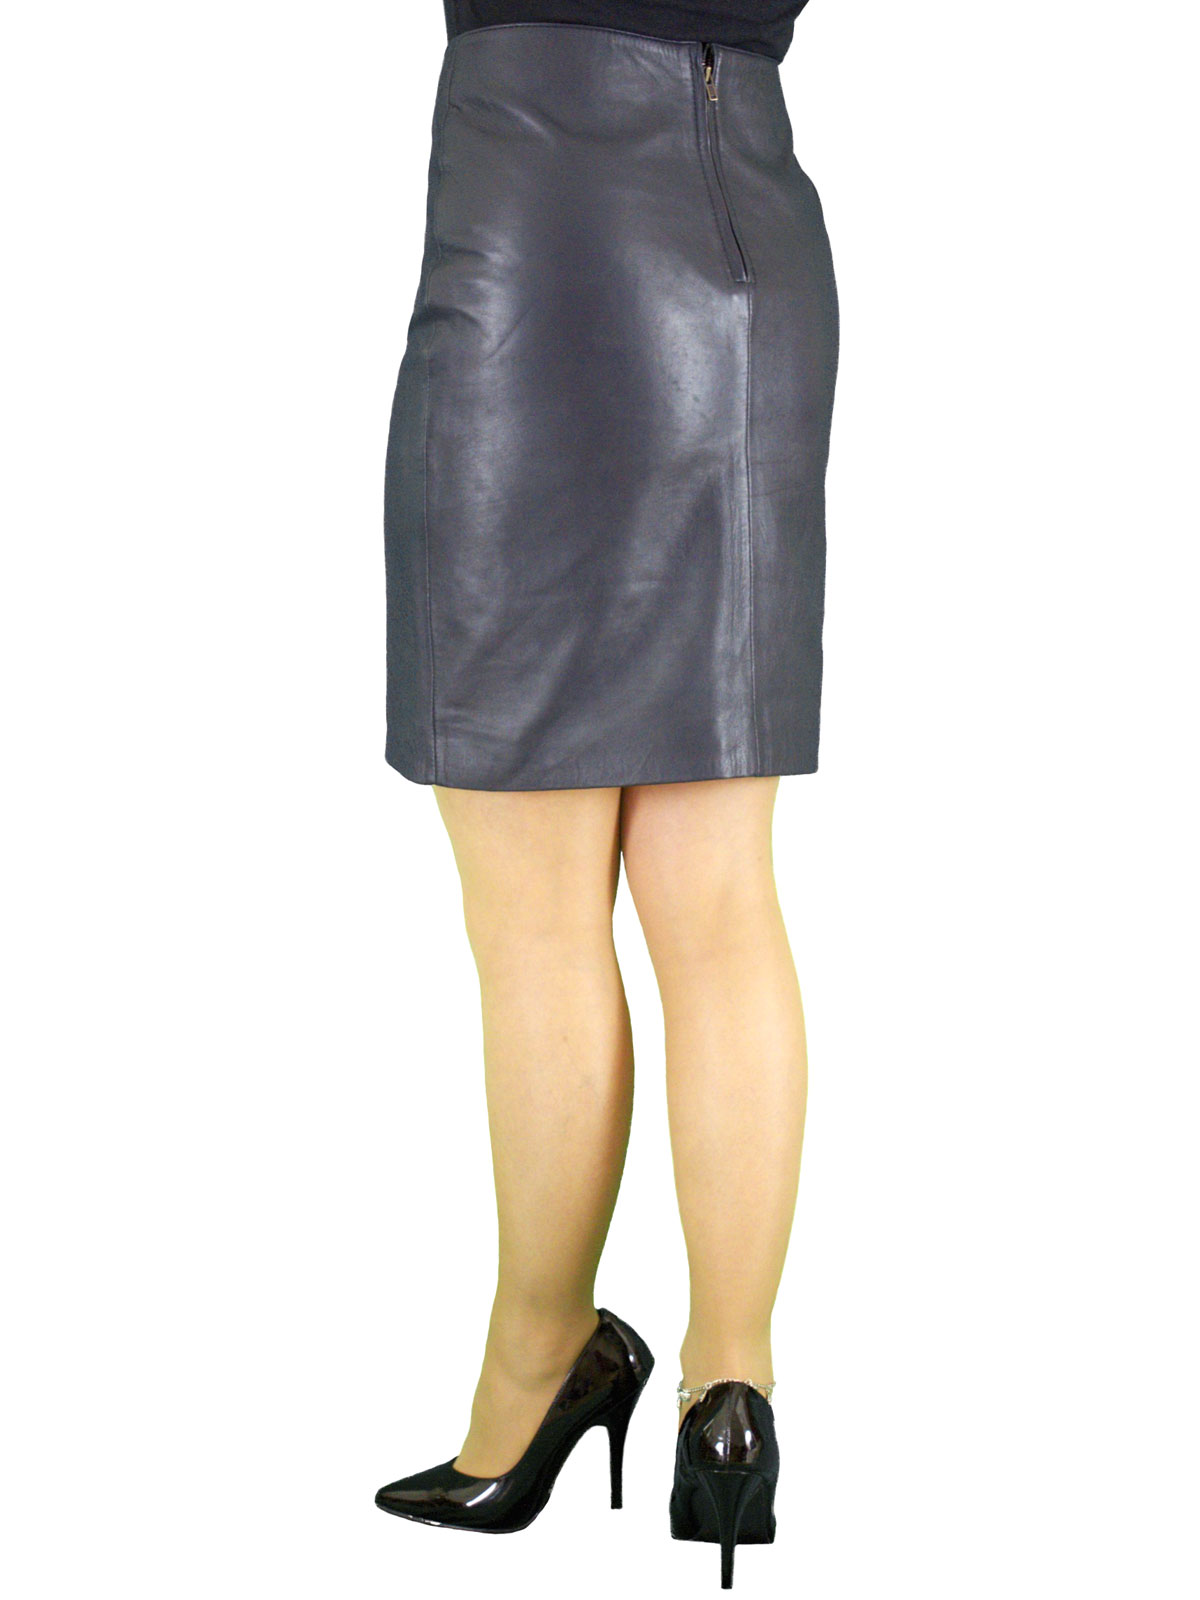 luxury leather pencil skirt above knee 19in length 5